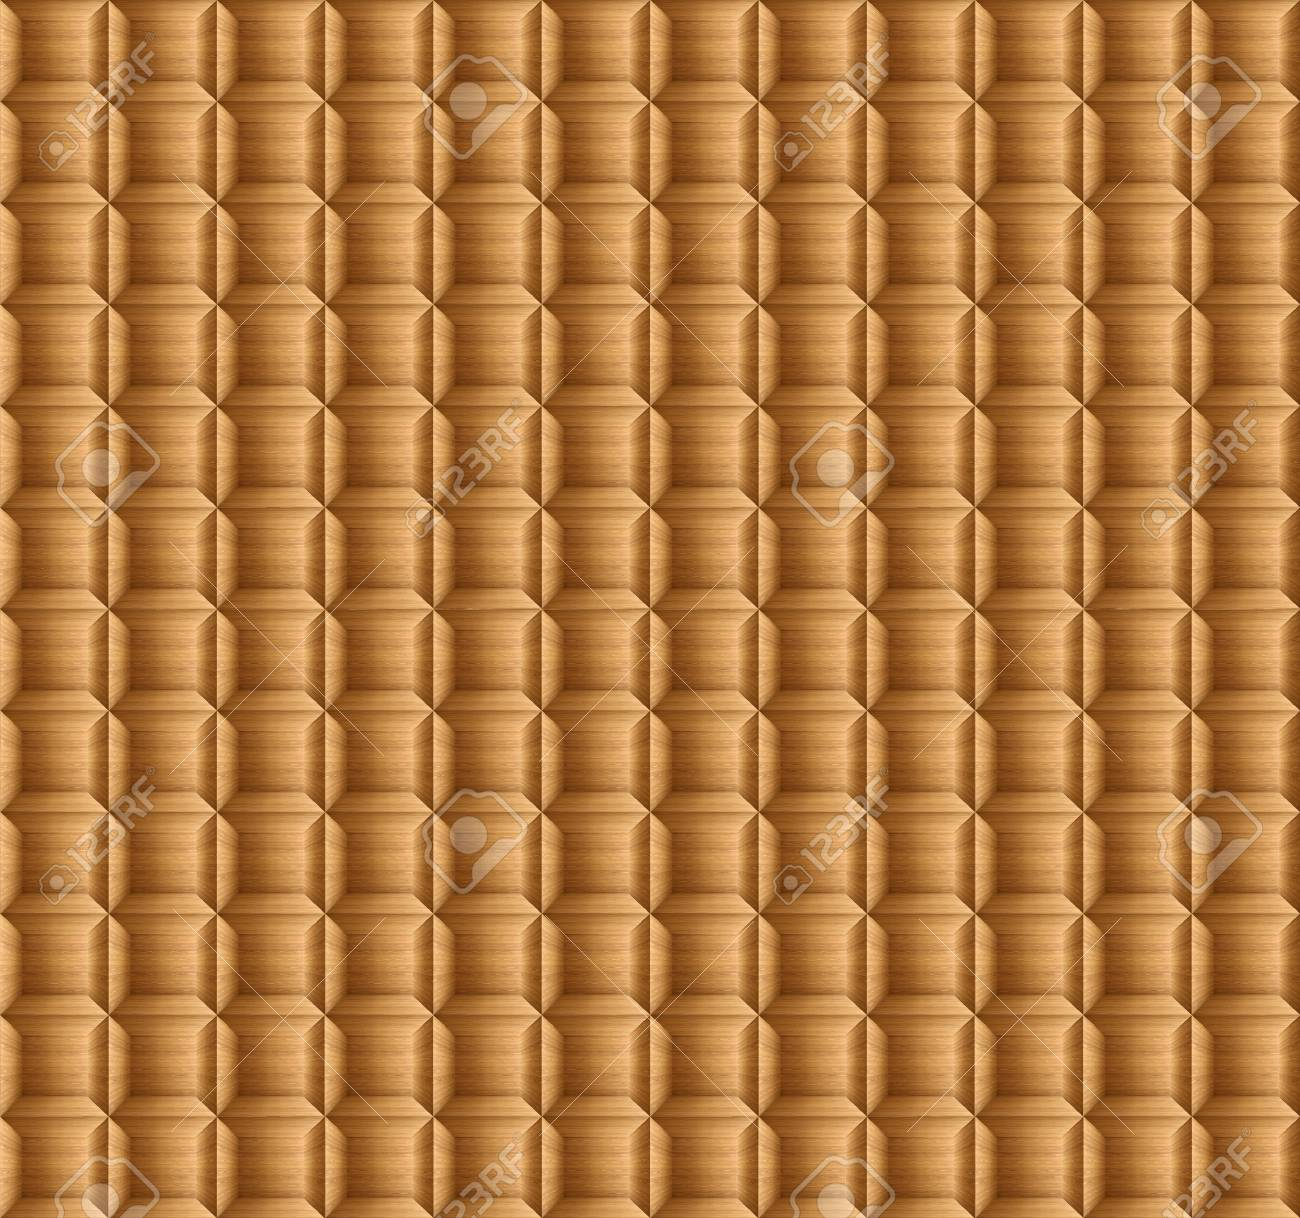 Texture Of Teak Wood Square Background Wooden Brick Block Wallpaper Stock Photo Picture And Royalty Free Image Image 87966892